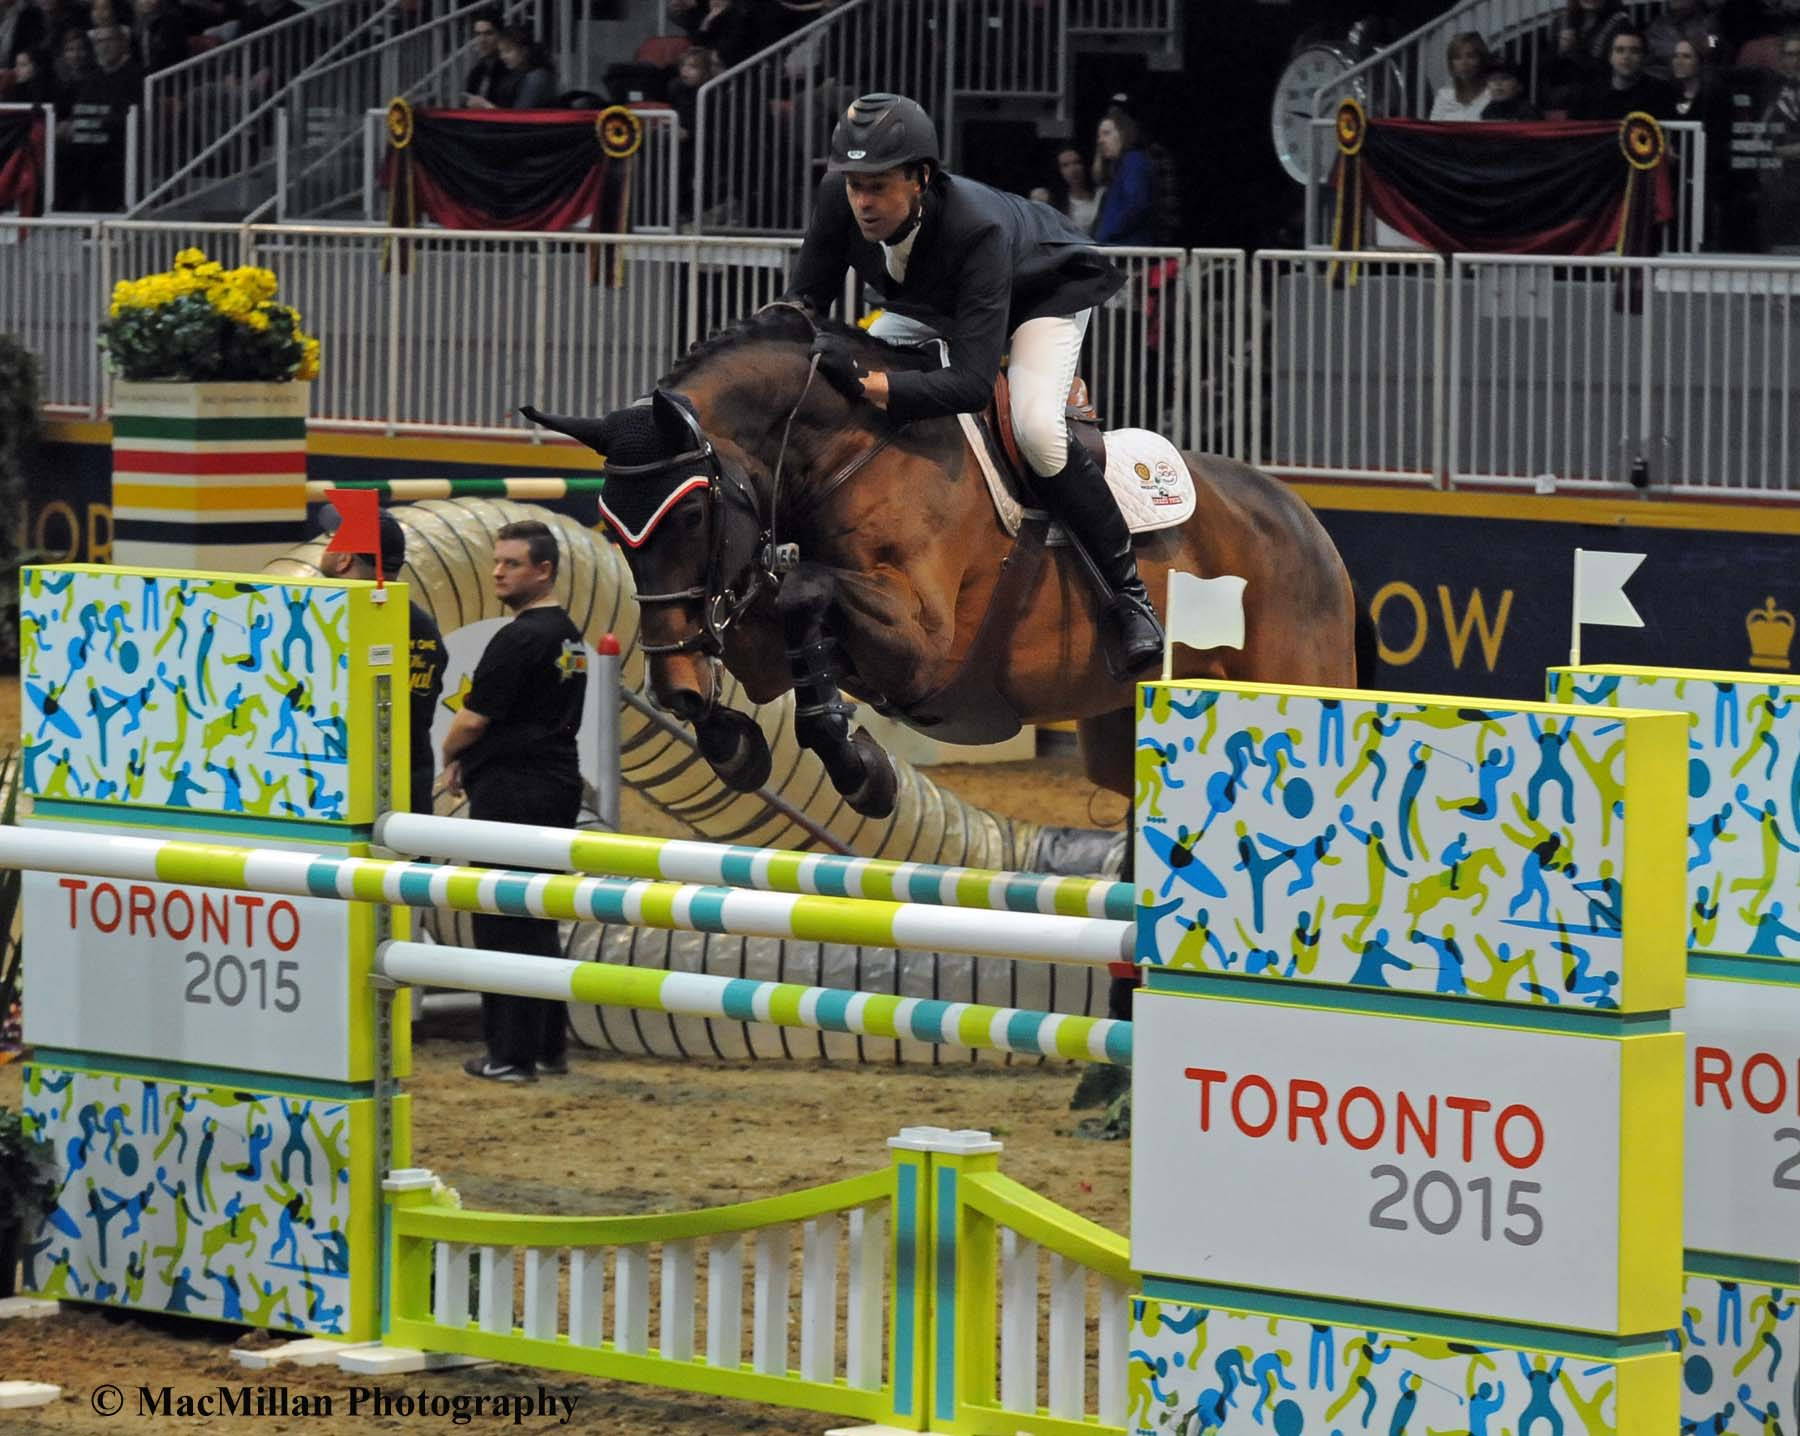 Photo 7 – The Royal Winter Fair Leading Canadian Rider was Jonathan Millar shown here on Baranus in the $15,000 Canine/Equine Challenge Class where they placed fifth. Photo by Sarah Miller/MacMillan Photography